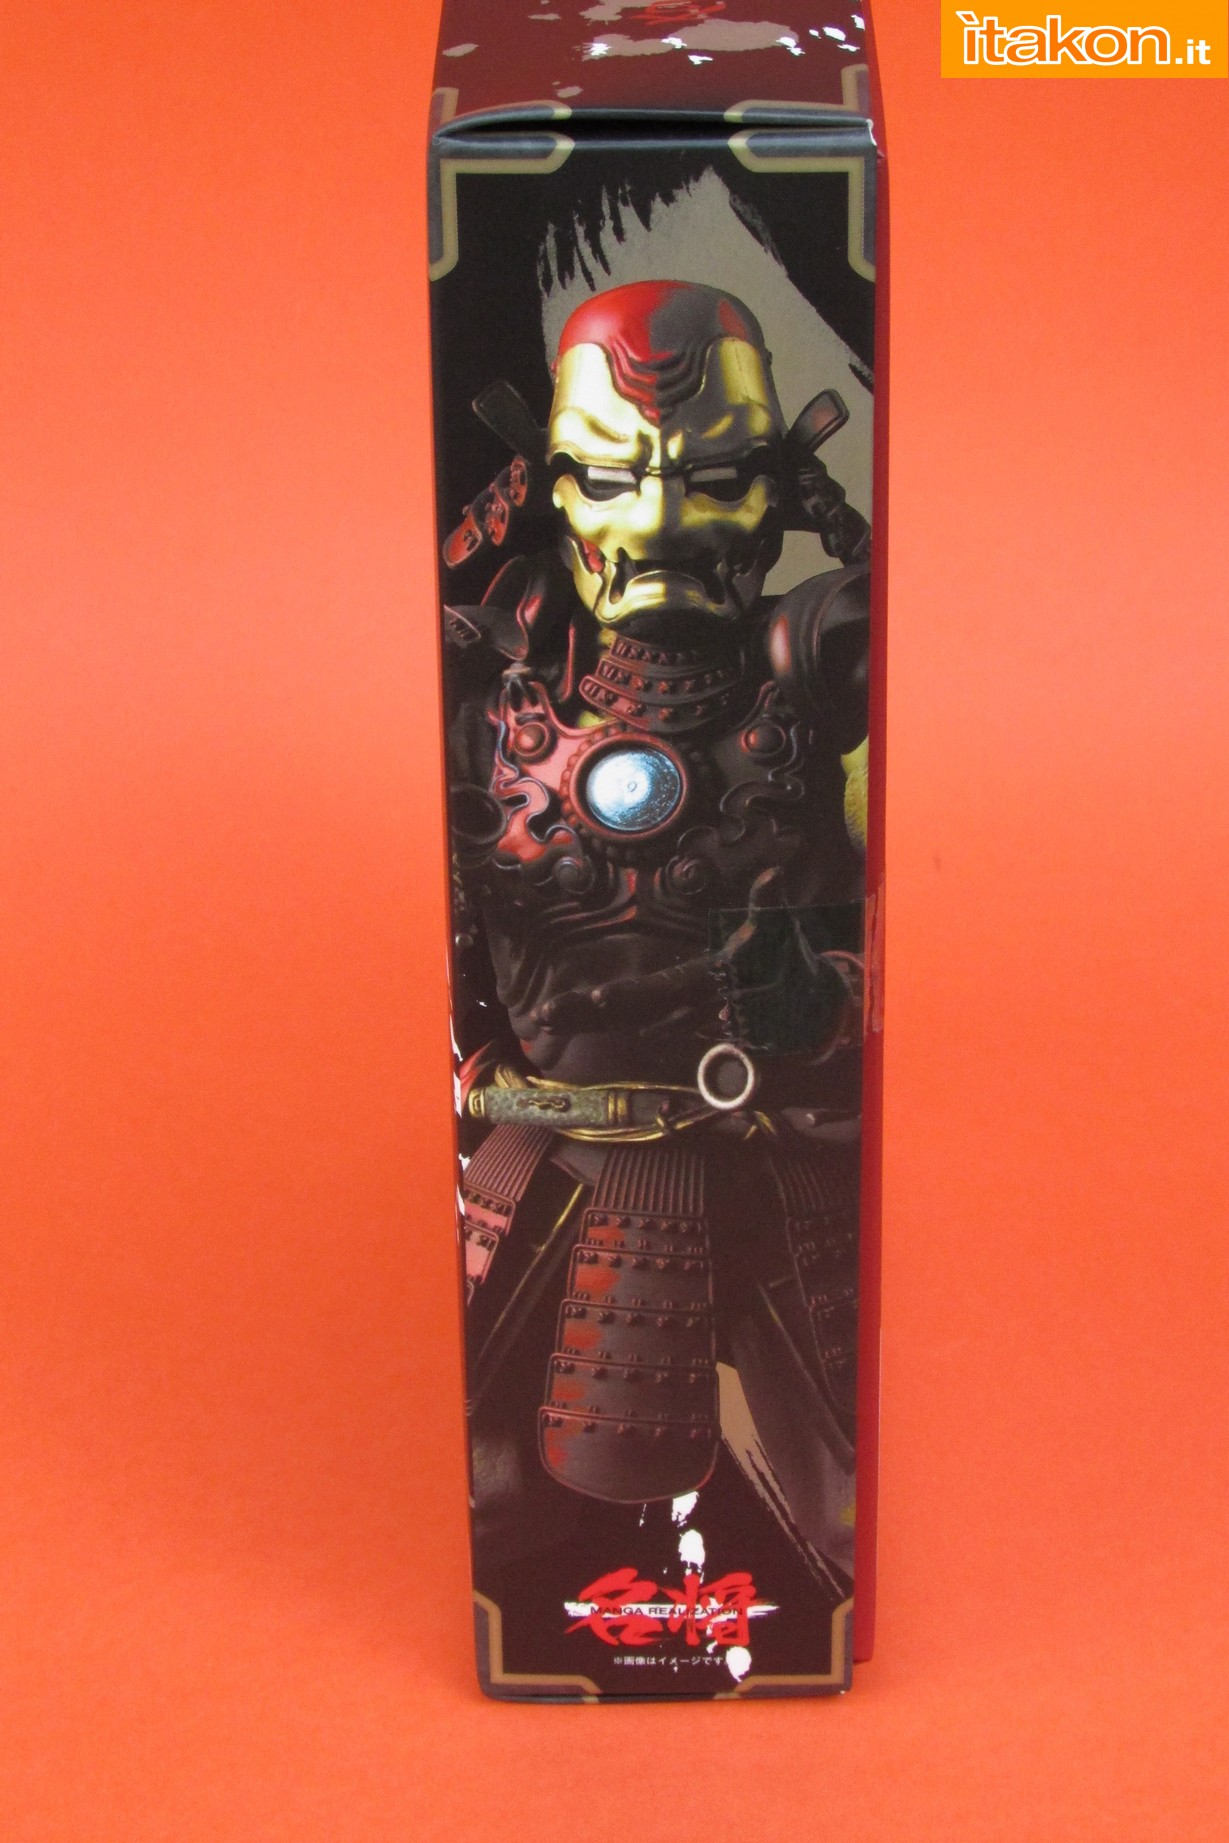 Link a Marvel Comics Koutetsu Samurai Iron Man Mark 3 Meishou MANGA REALIZATION review Bandai Itakon.it06